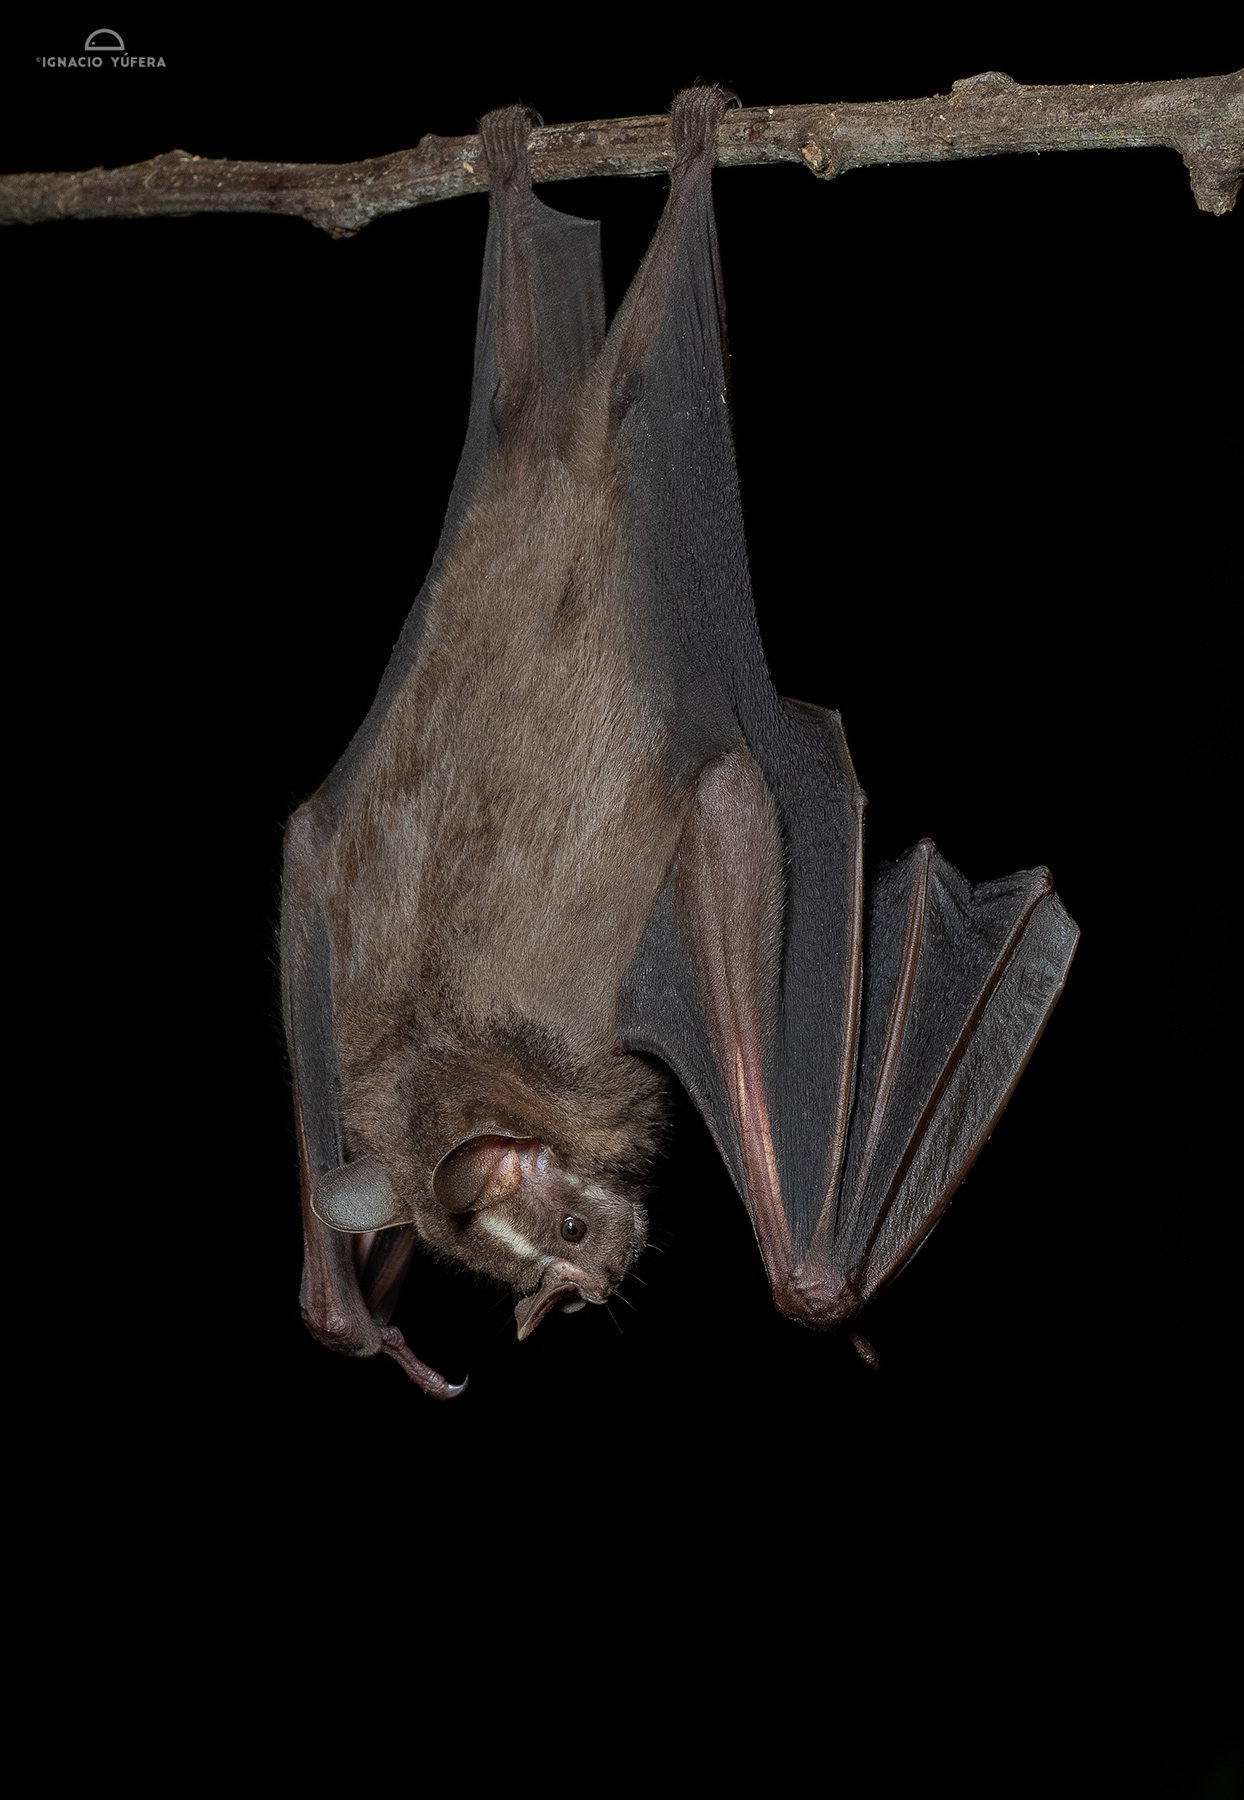 Greater Fruit-eating Bat (Artibeus lituratus), Madre de Dios, Peru